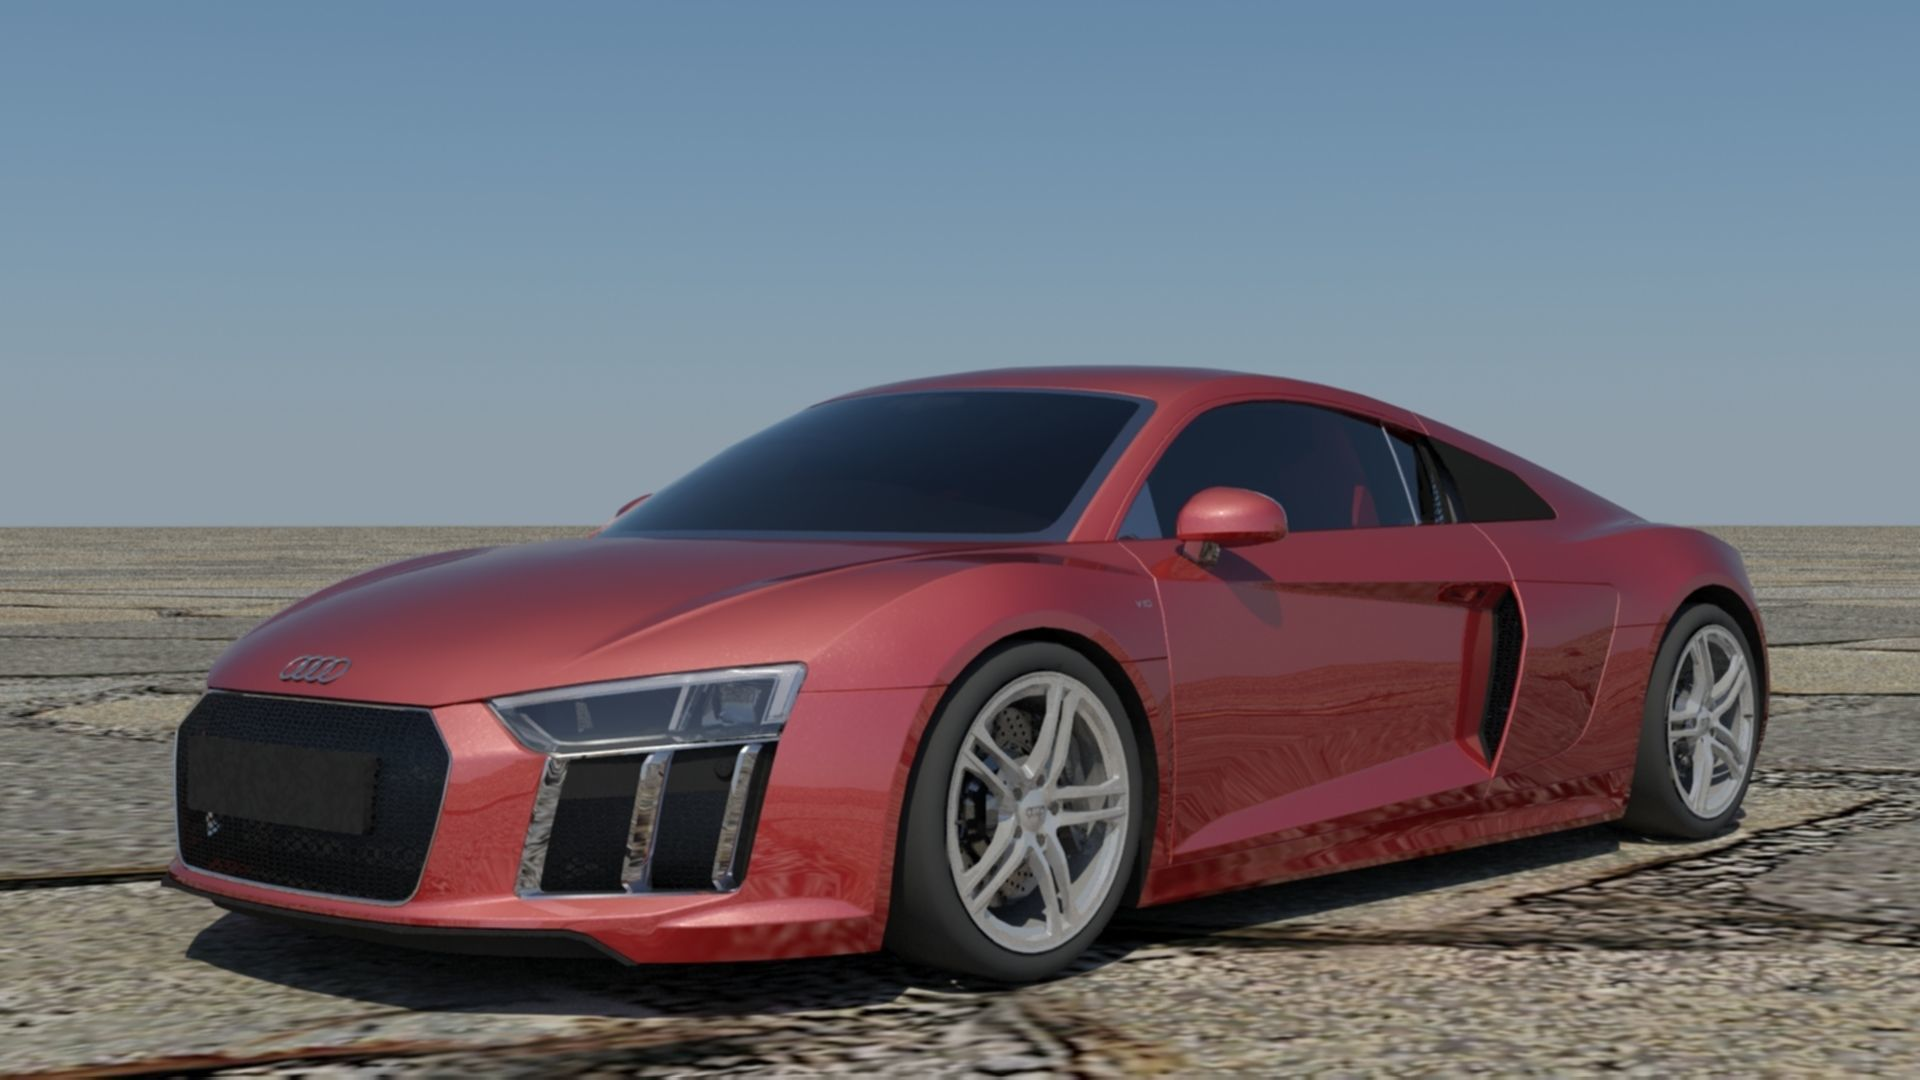 Audi R8 V10 Coupe 3d Model Low Poly Max Obj 3ds Fbx C4d Stl 1 ...